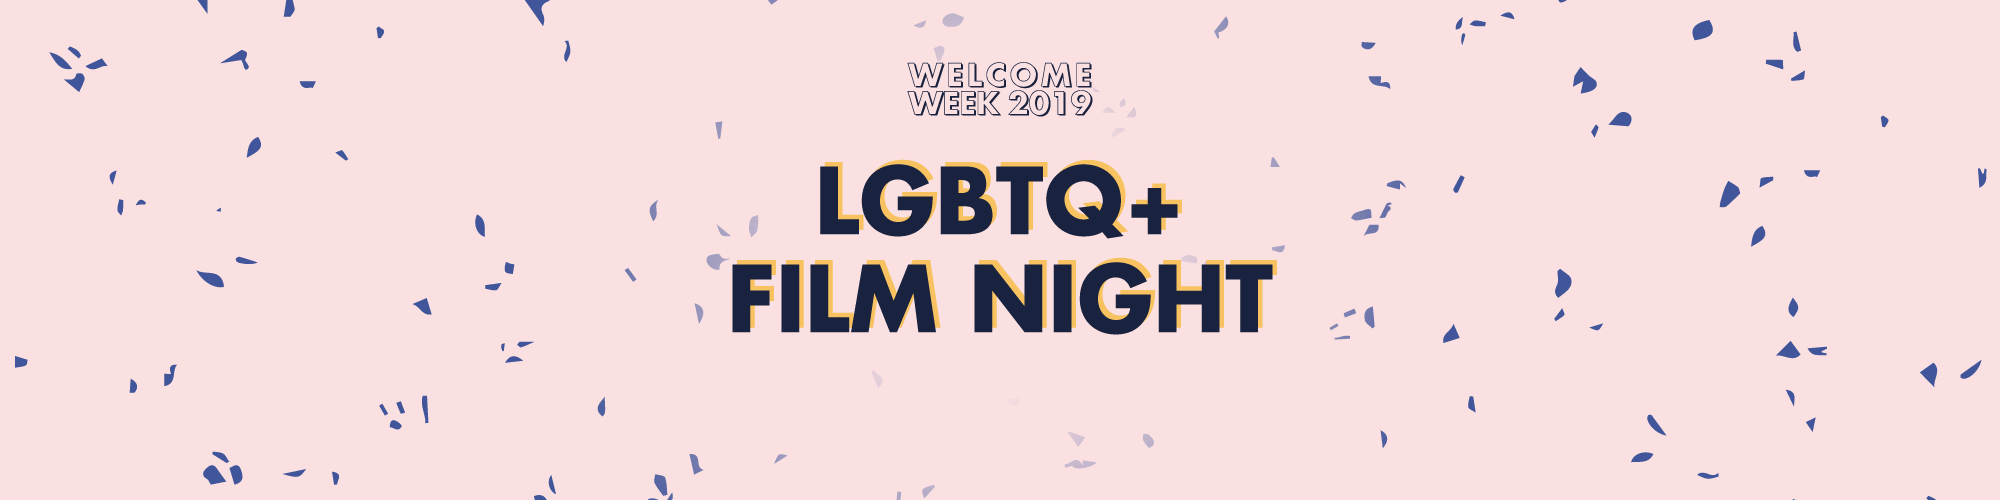 LGBTQ+ Film Night